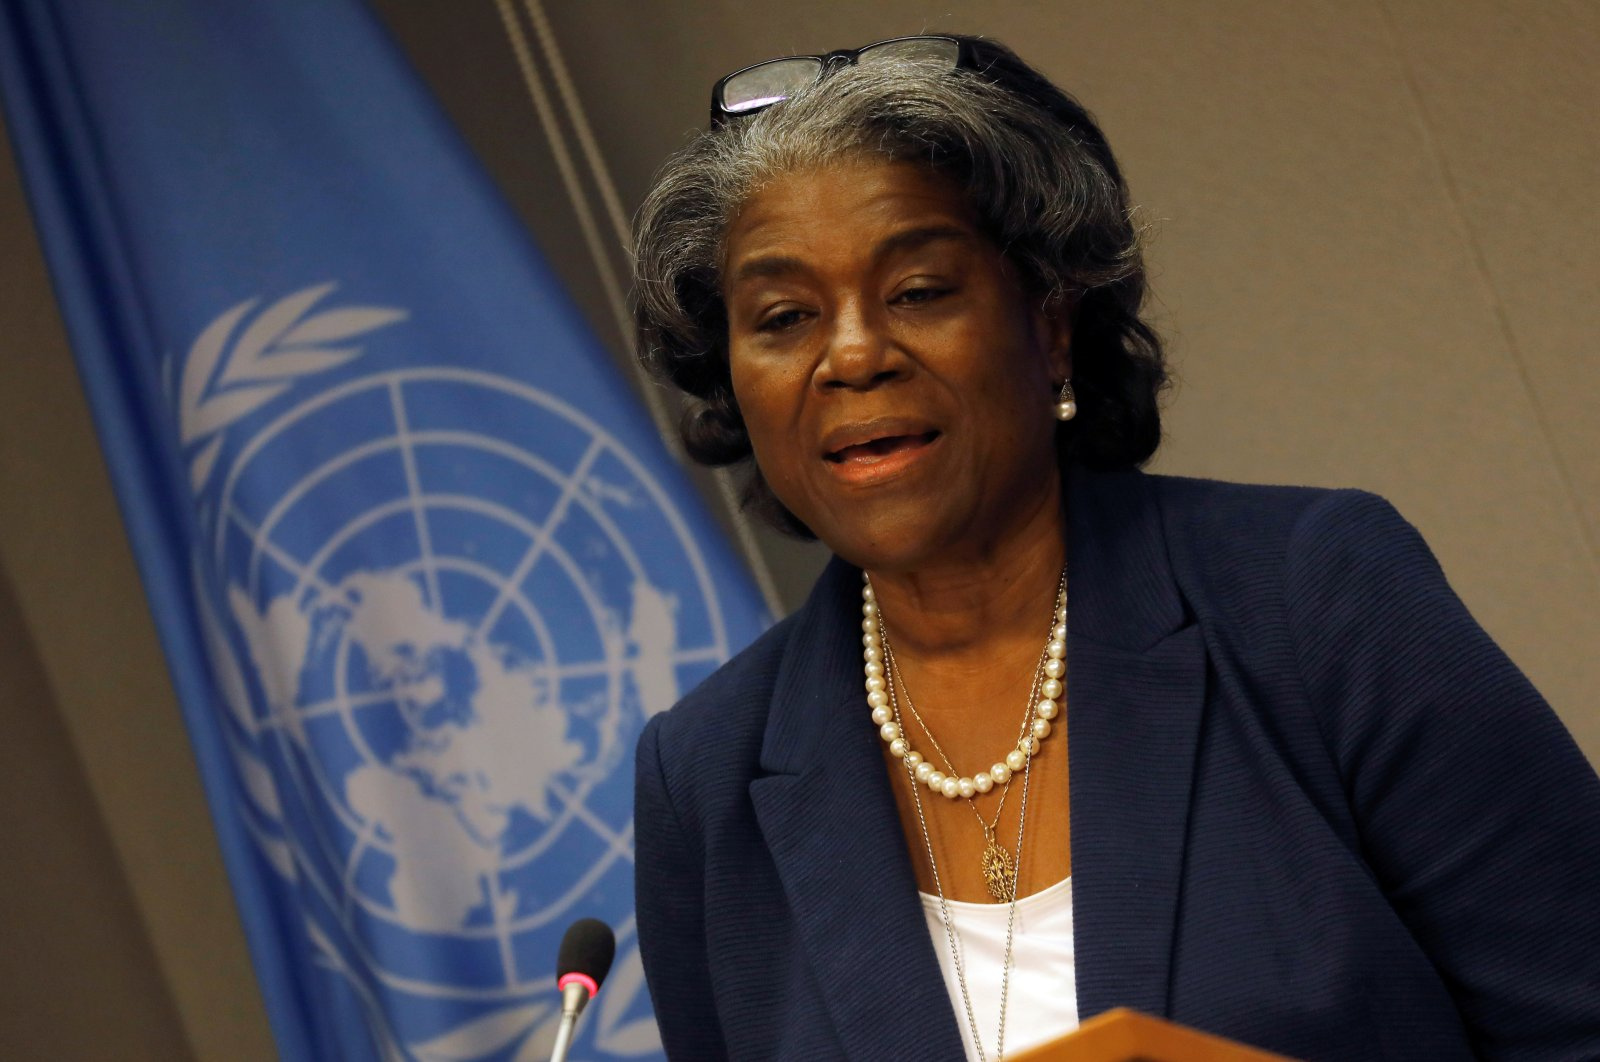 New U.S. Ambassador to the United Nations Linda Thomas-Greenfield holds a news conference to mark the start of the U.S. presidency of the U.N. Security Council for March, at the U.N. headquarters in New York, U.S., March 1, 2021. (Reuters Photo)